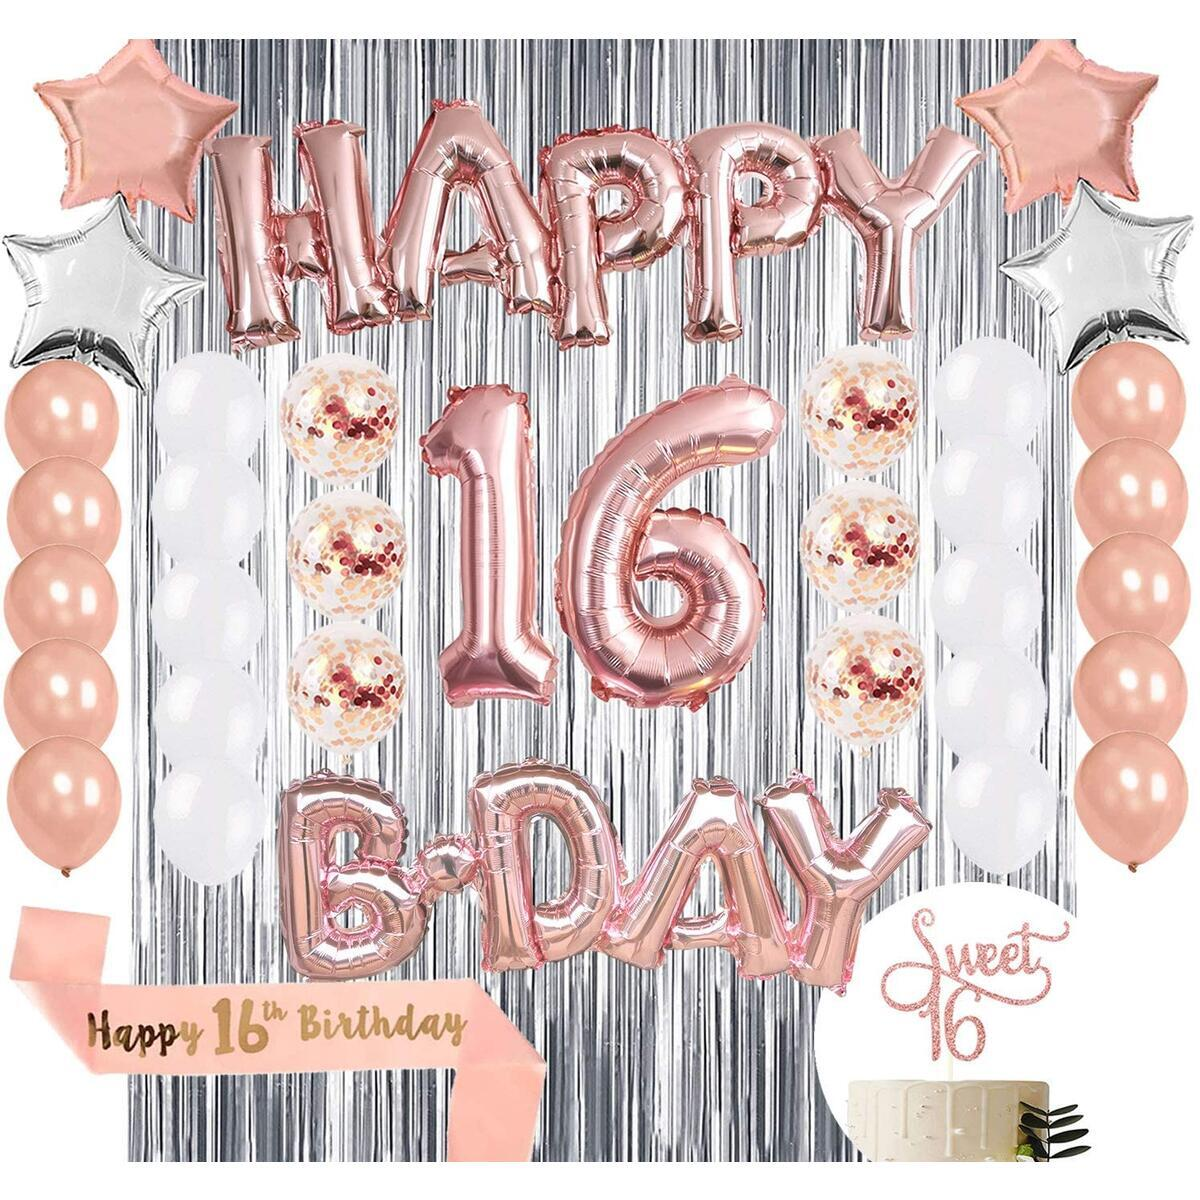 16th Birthday Party Decorations for Girls